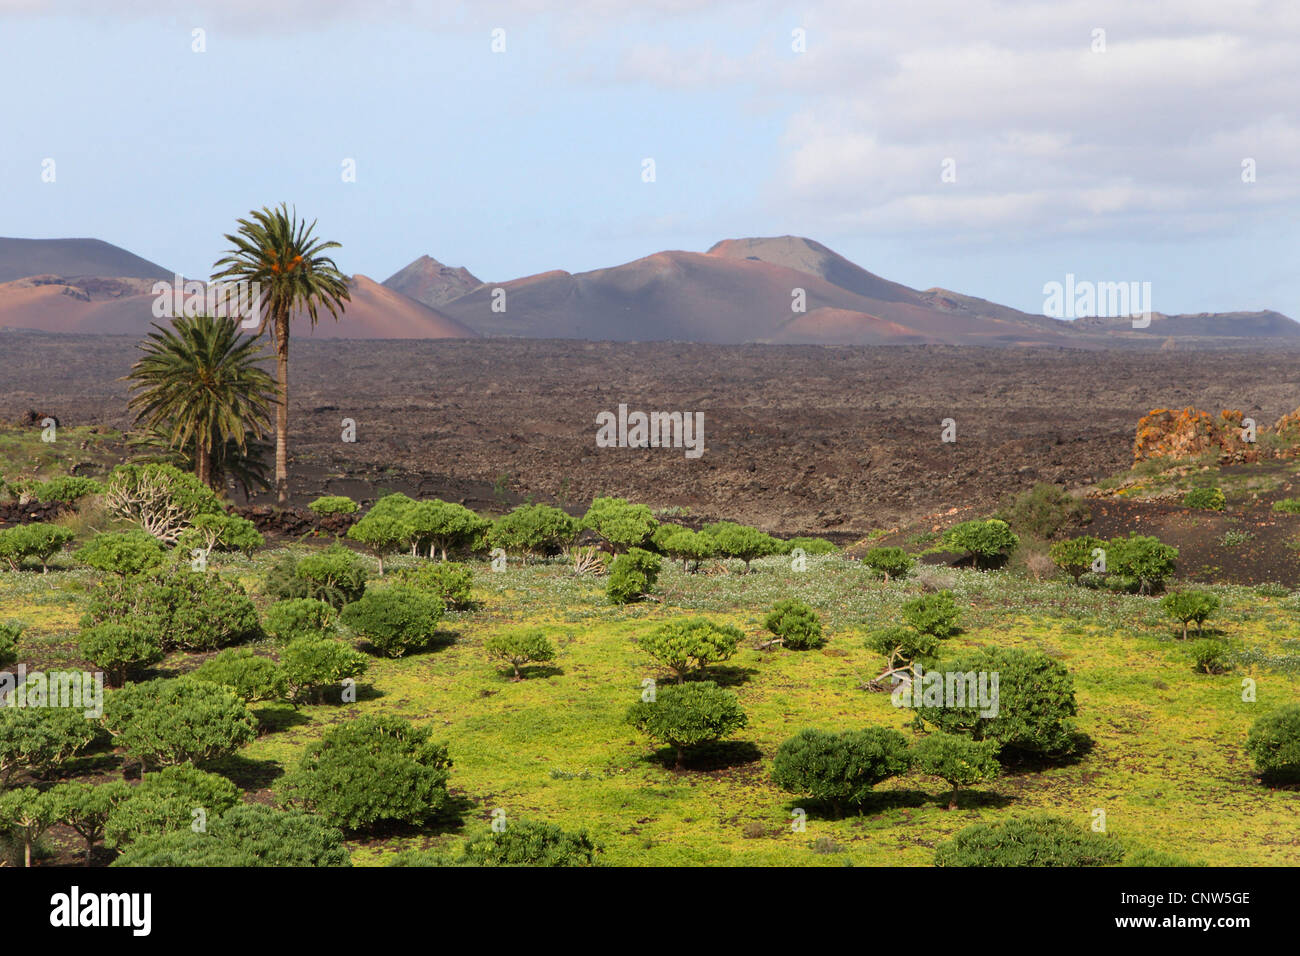 varied volcanic mountain scenery, Canary Islands, Lanzarote - Stock Image